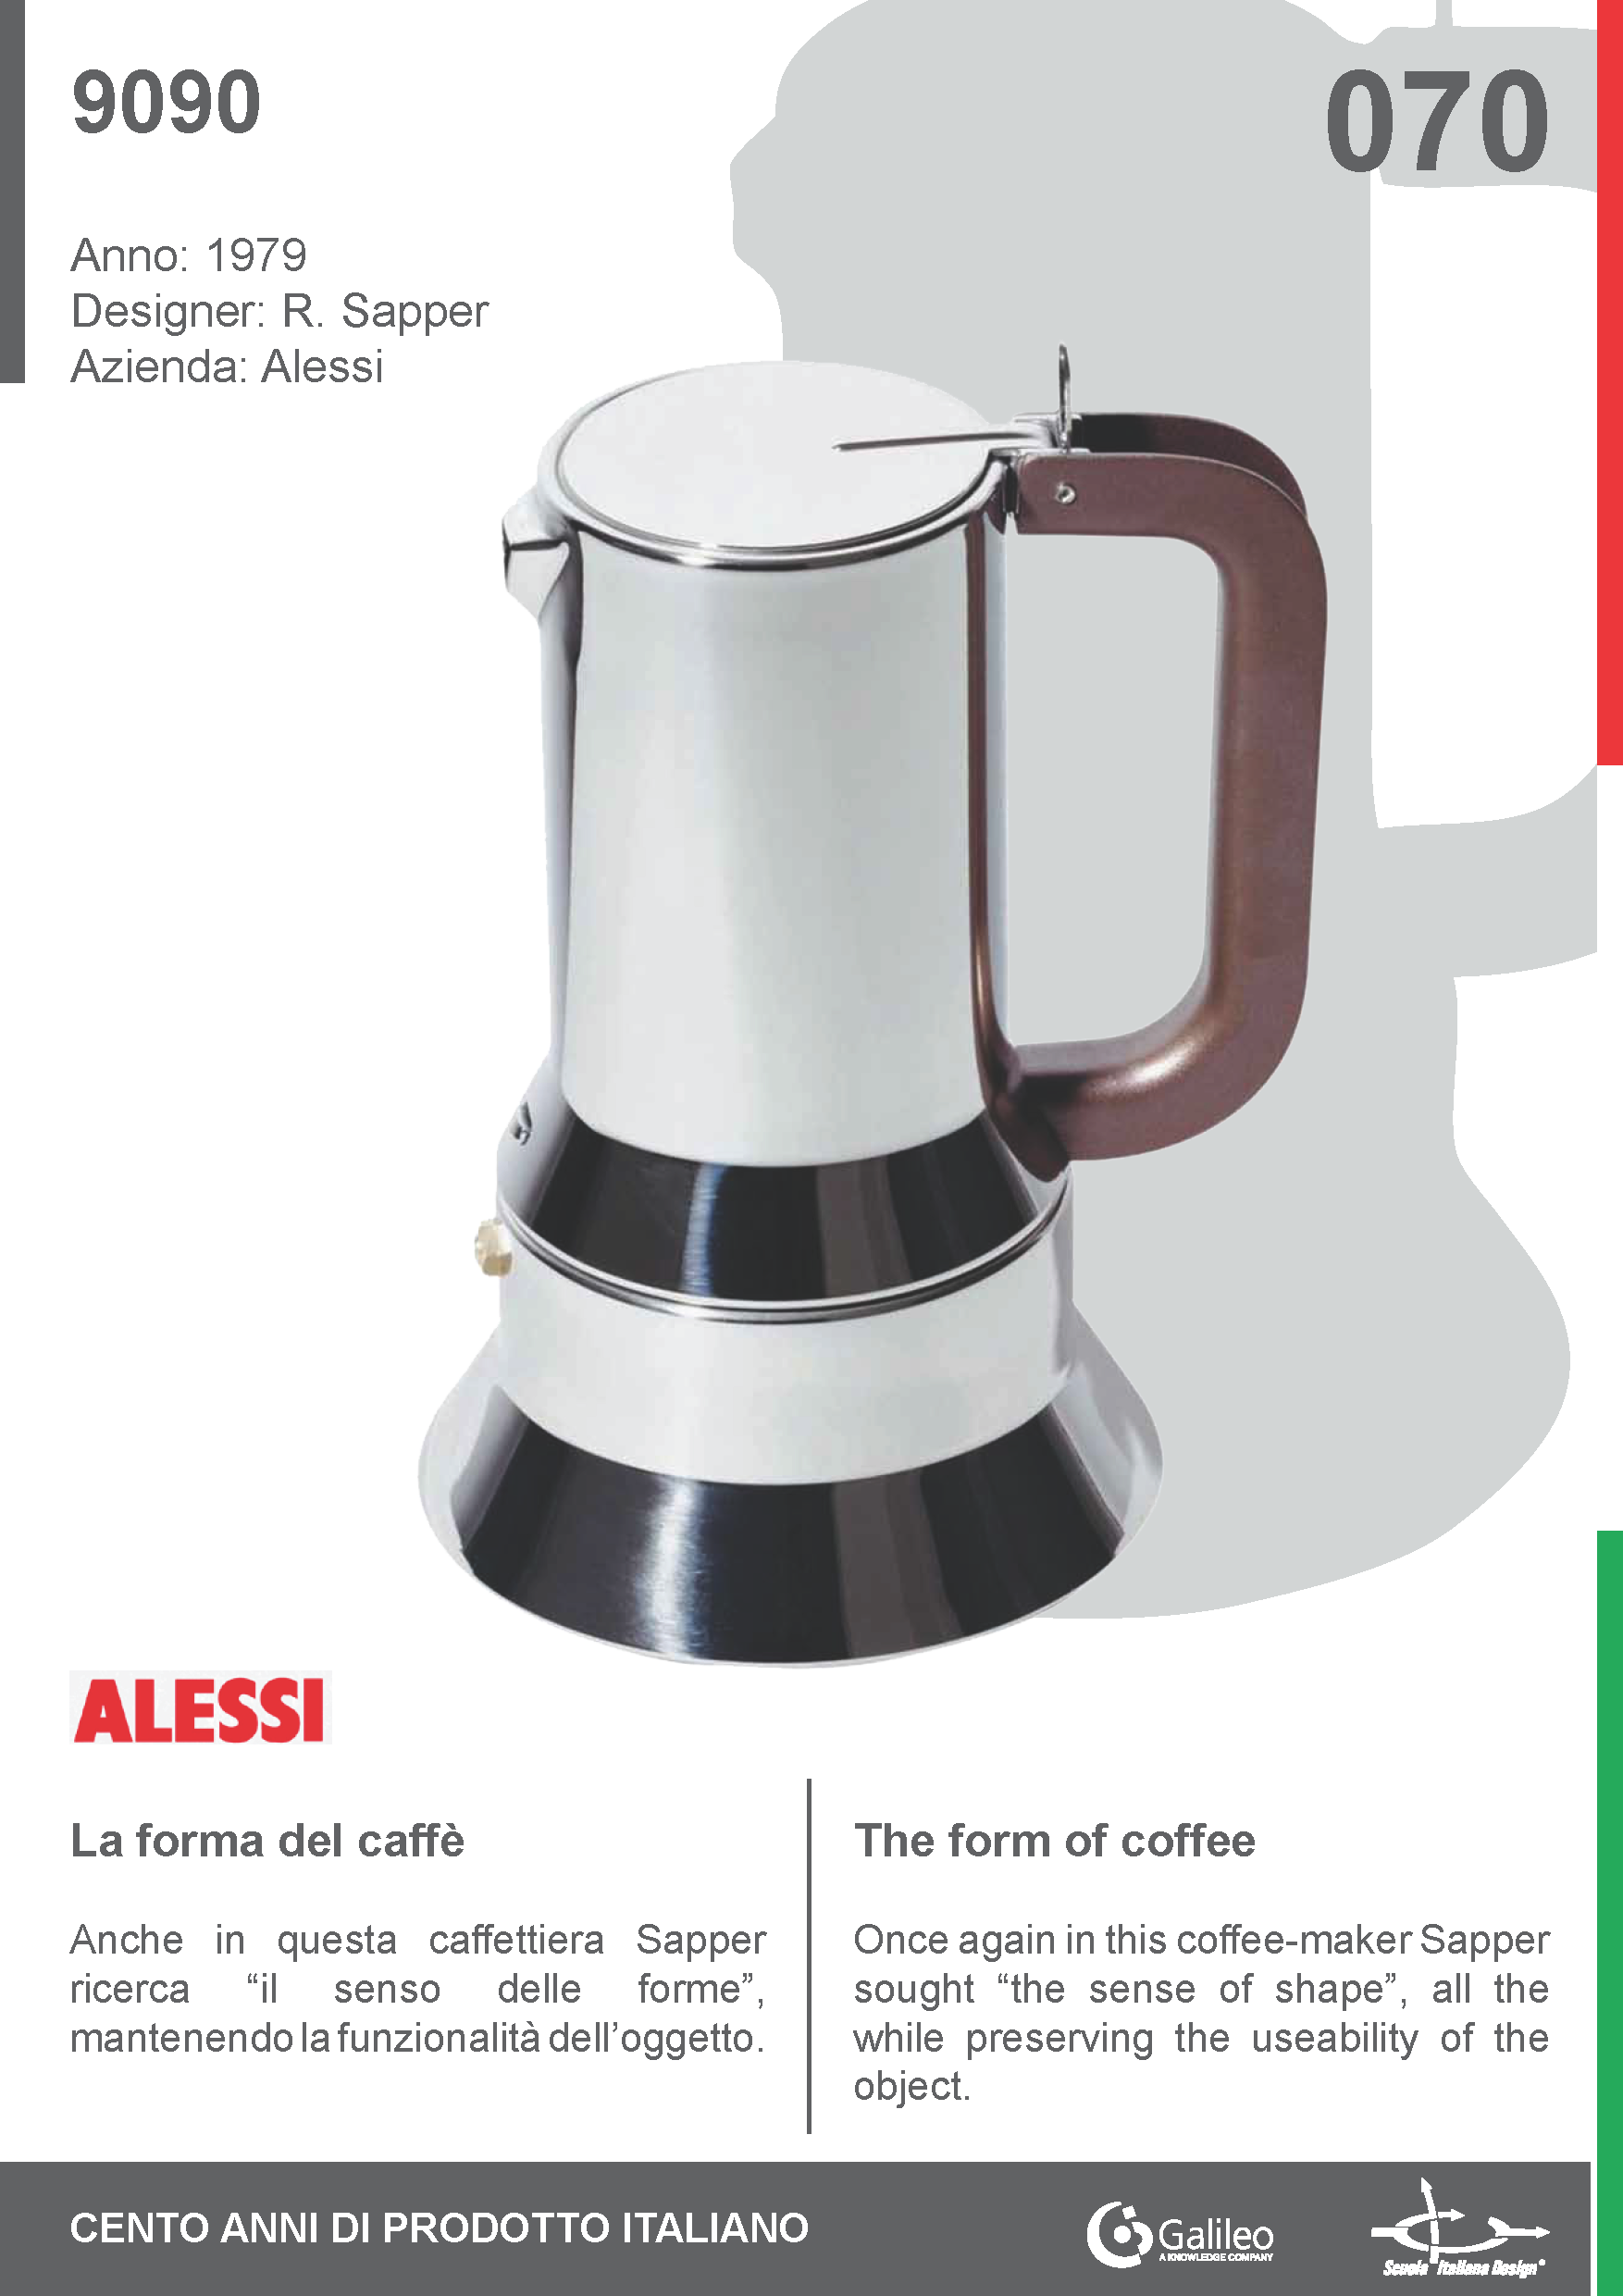 9090 By Richard Sapper For Alessi (1979) #Coffee #Maker